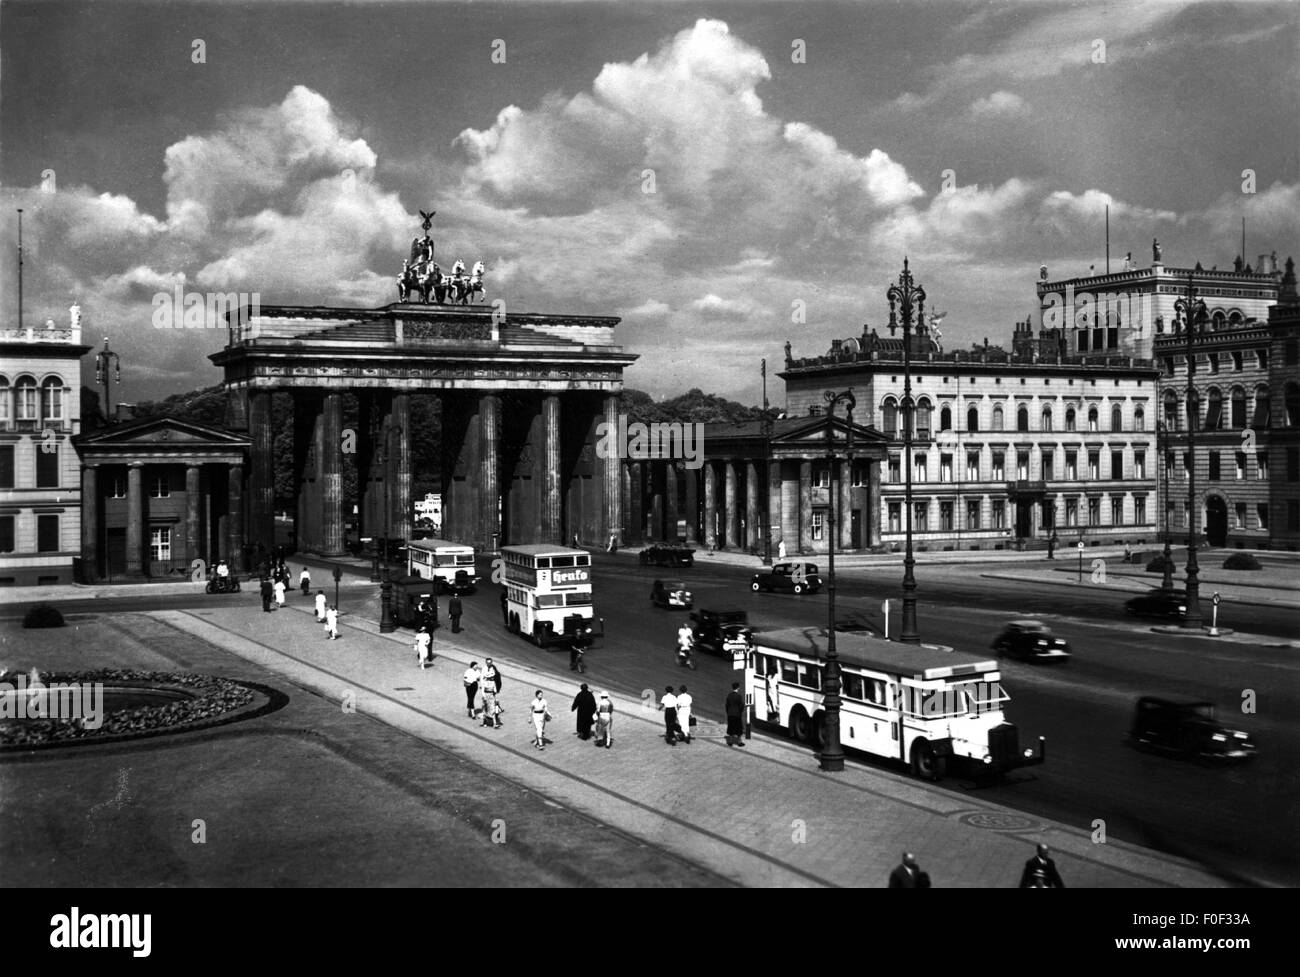 geography / travel, Germany, Berlin, square, Pariser Platz with Brandenburg Gate, late 1930s, 30s, 20th century, - Stock Image